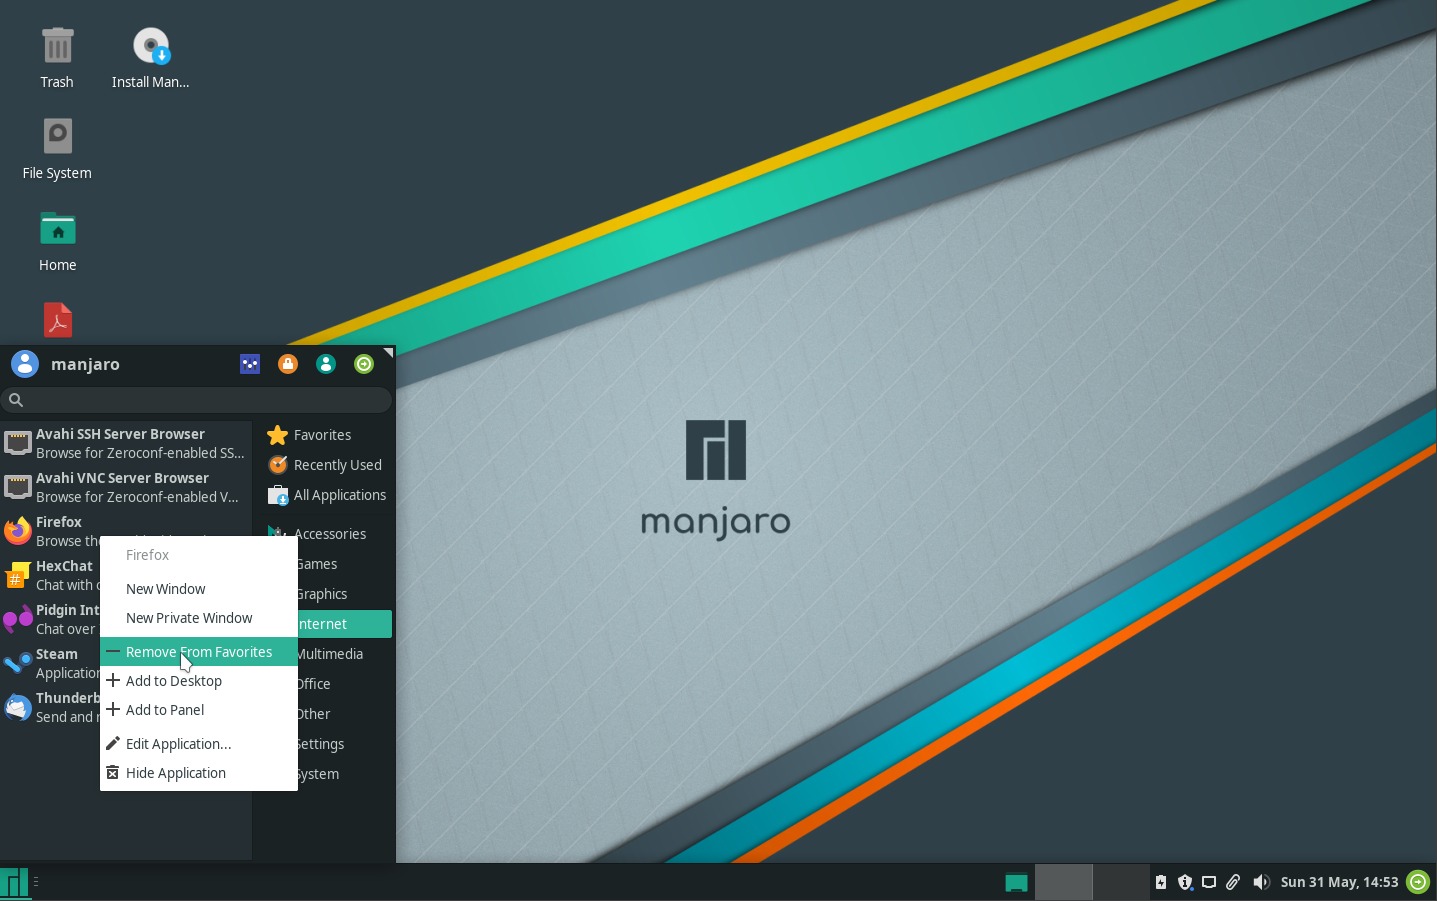 images/welcome-to-manjaro/remove-favourites.png